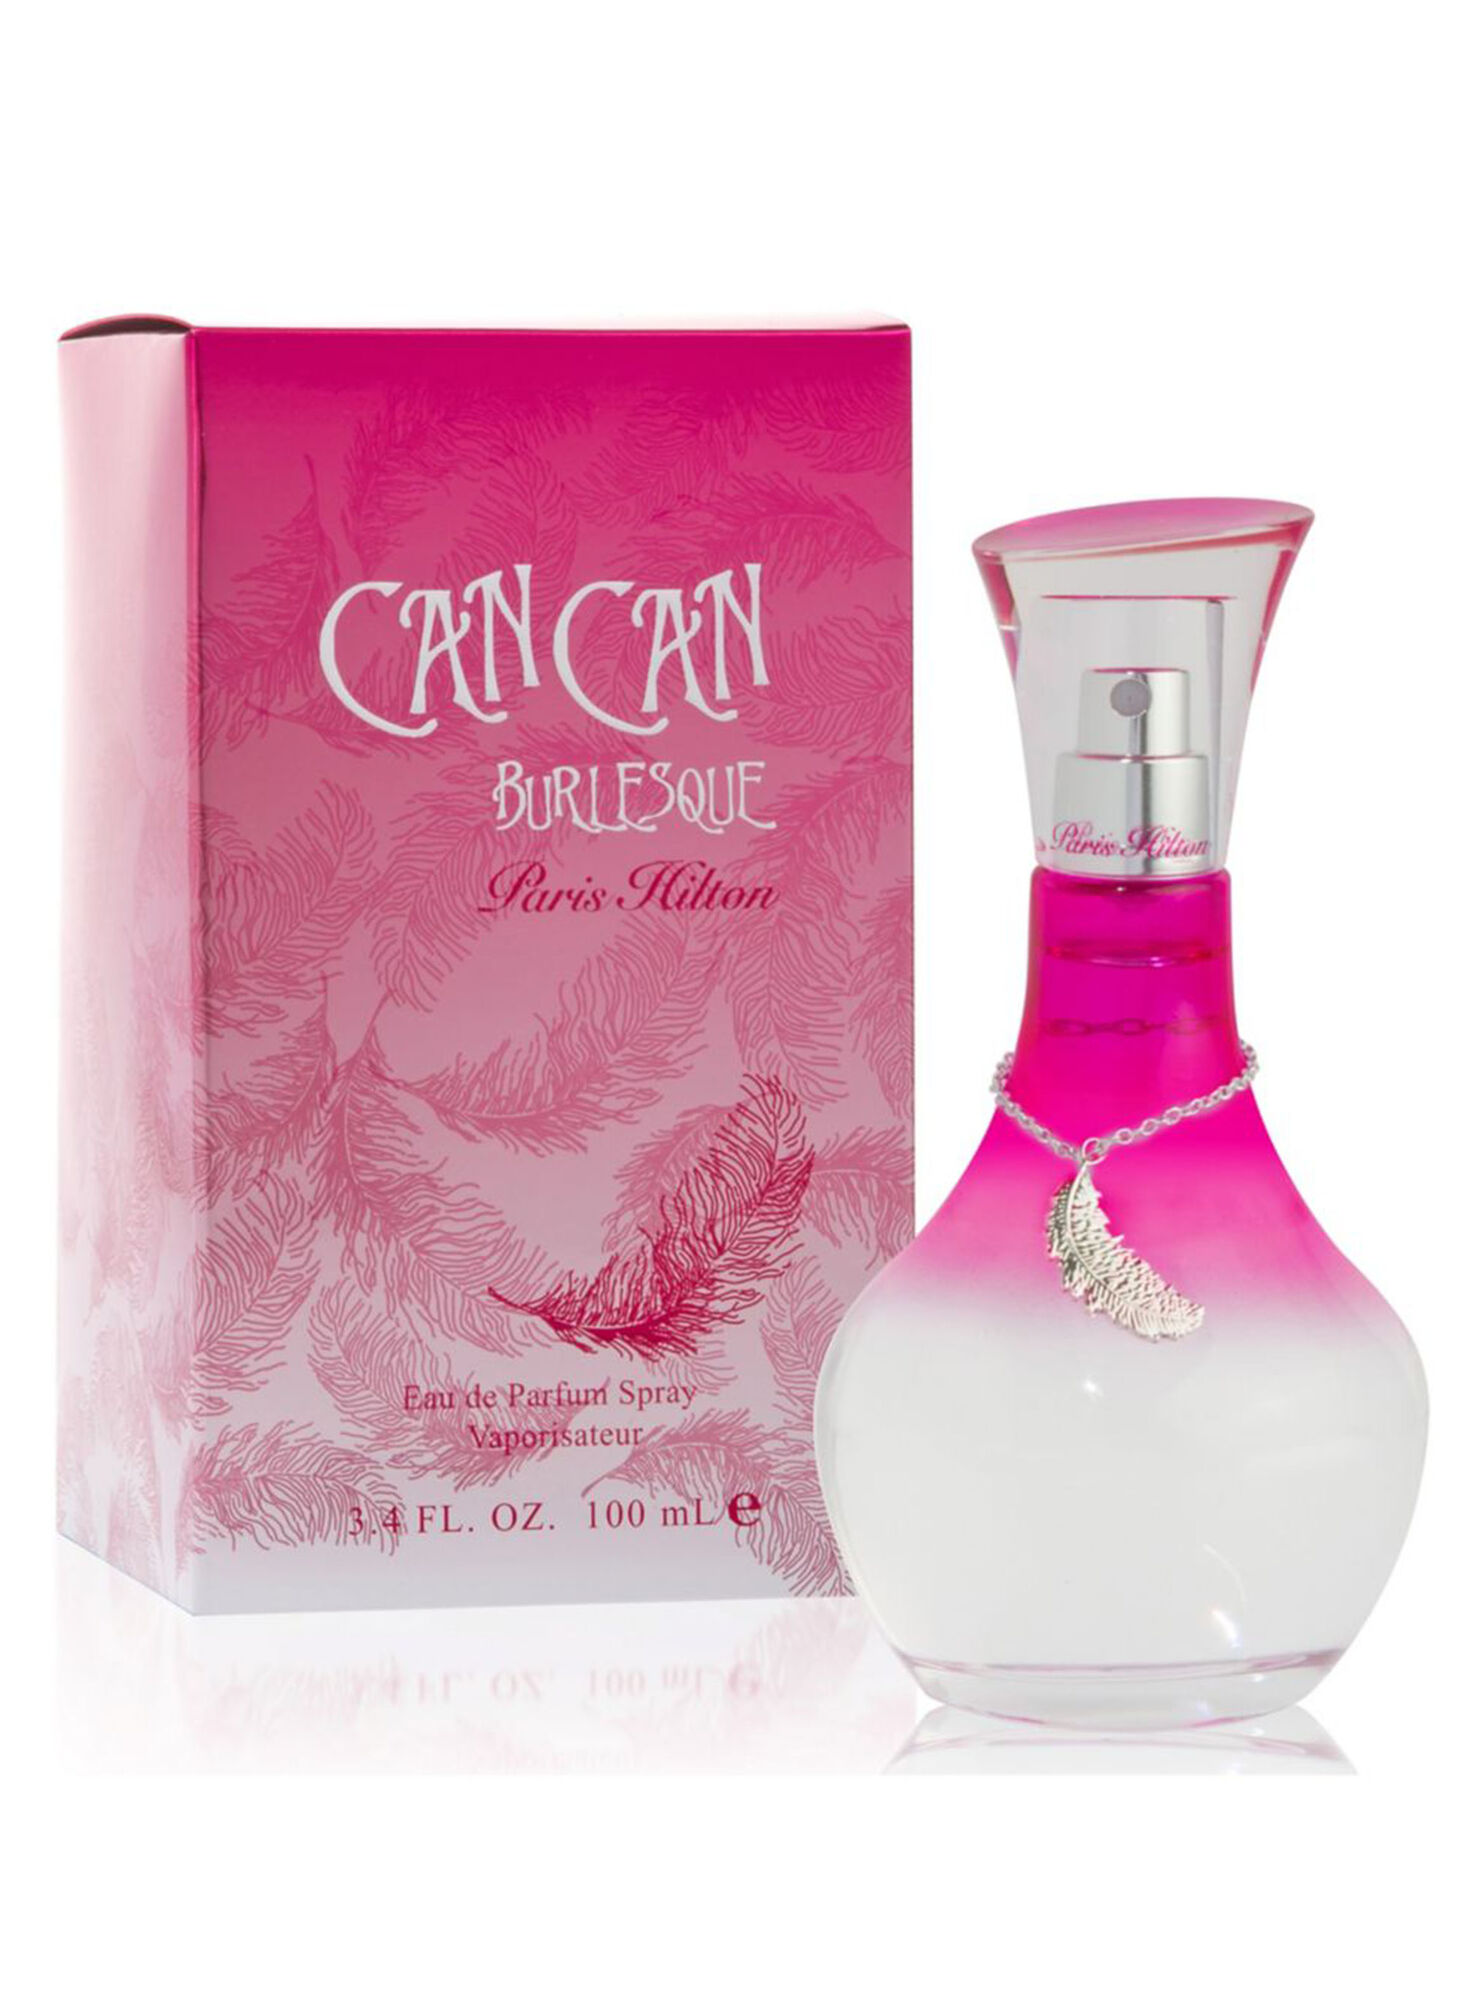 Perfume Paris Hilton Can Can Burlesque Mujer Edp 100 Ml Perfumes Mujer Paris Cl